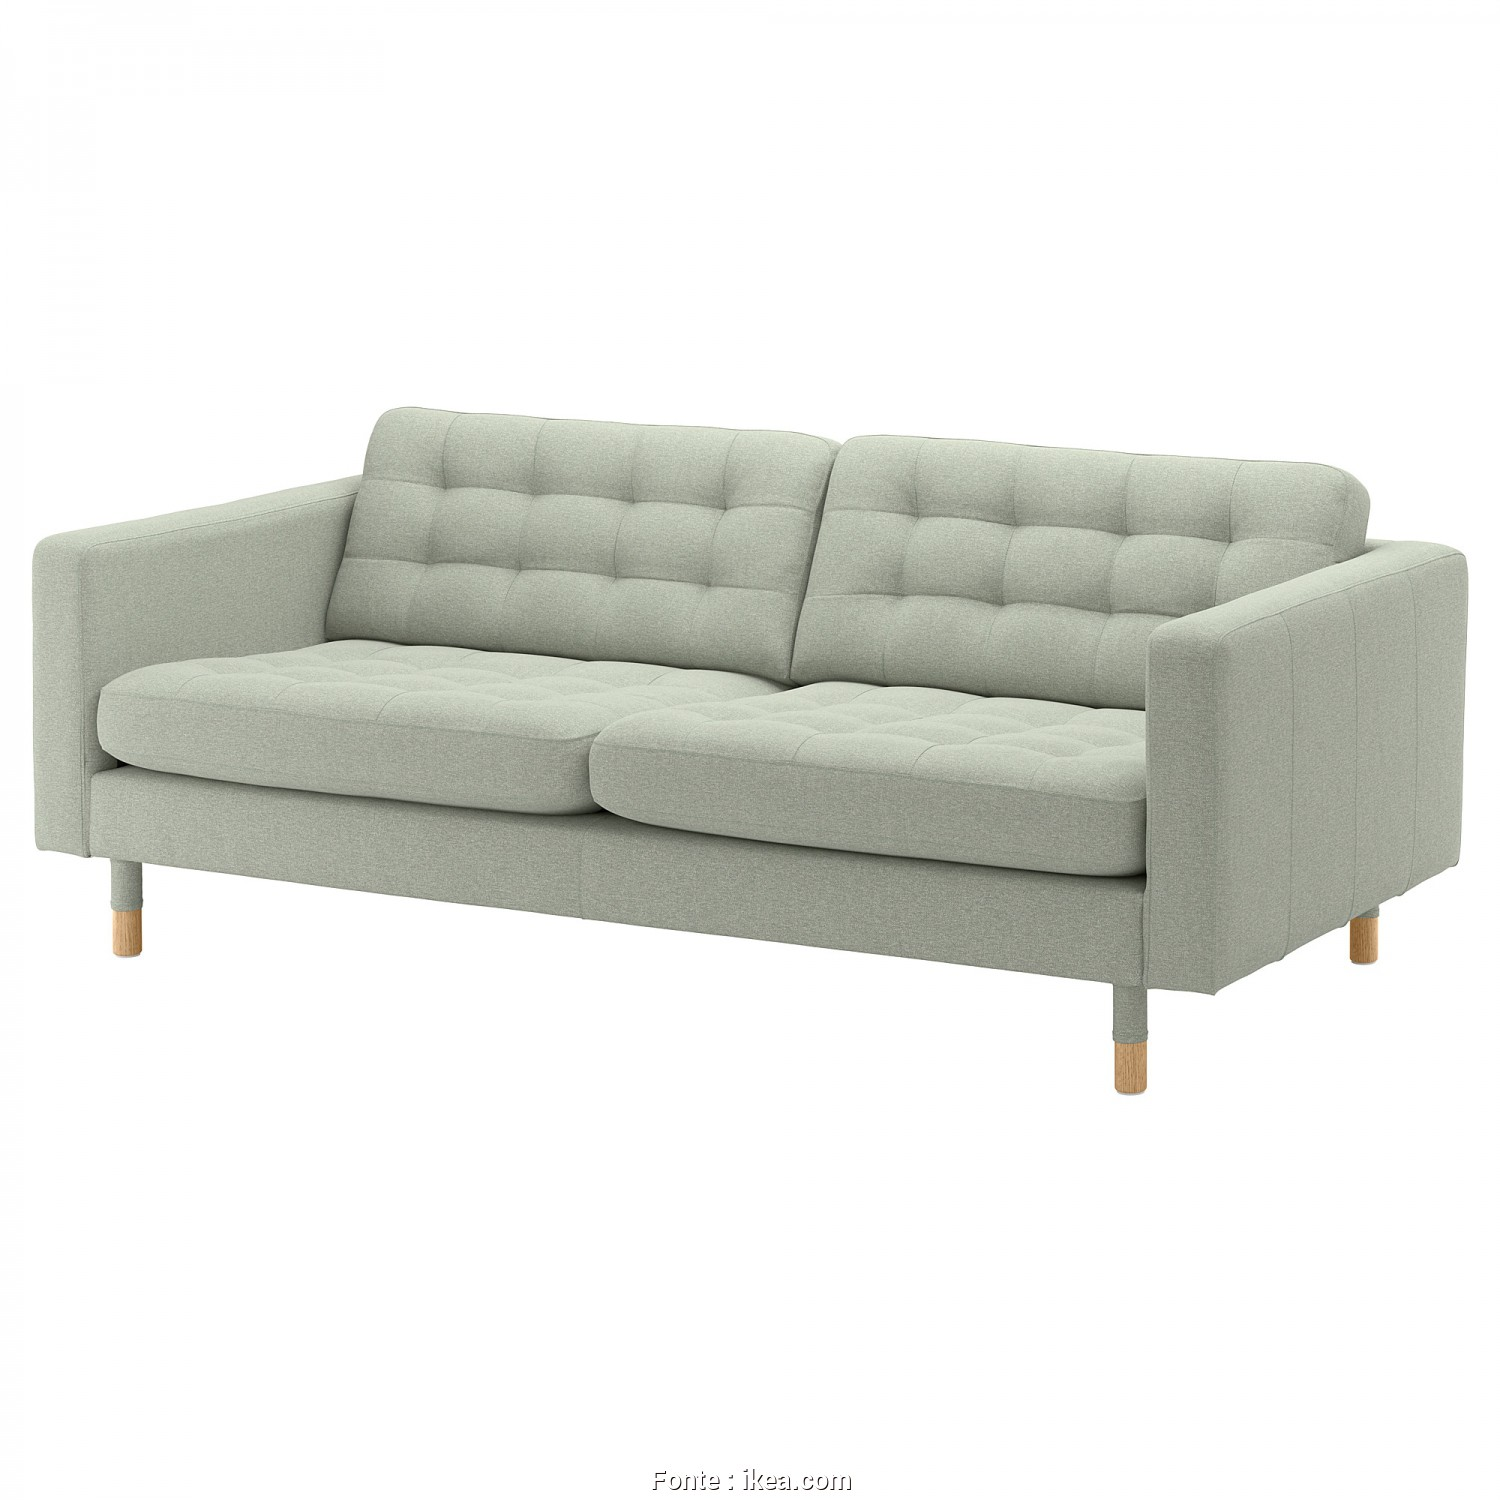 Ikea Klippan 3-Sits, Affascinante IKEA LANDSKRONA 3-Seat Sofa Removable Armrests Make It Easy To, On A Chaise